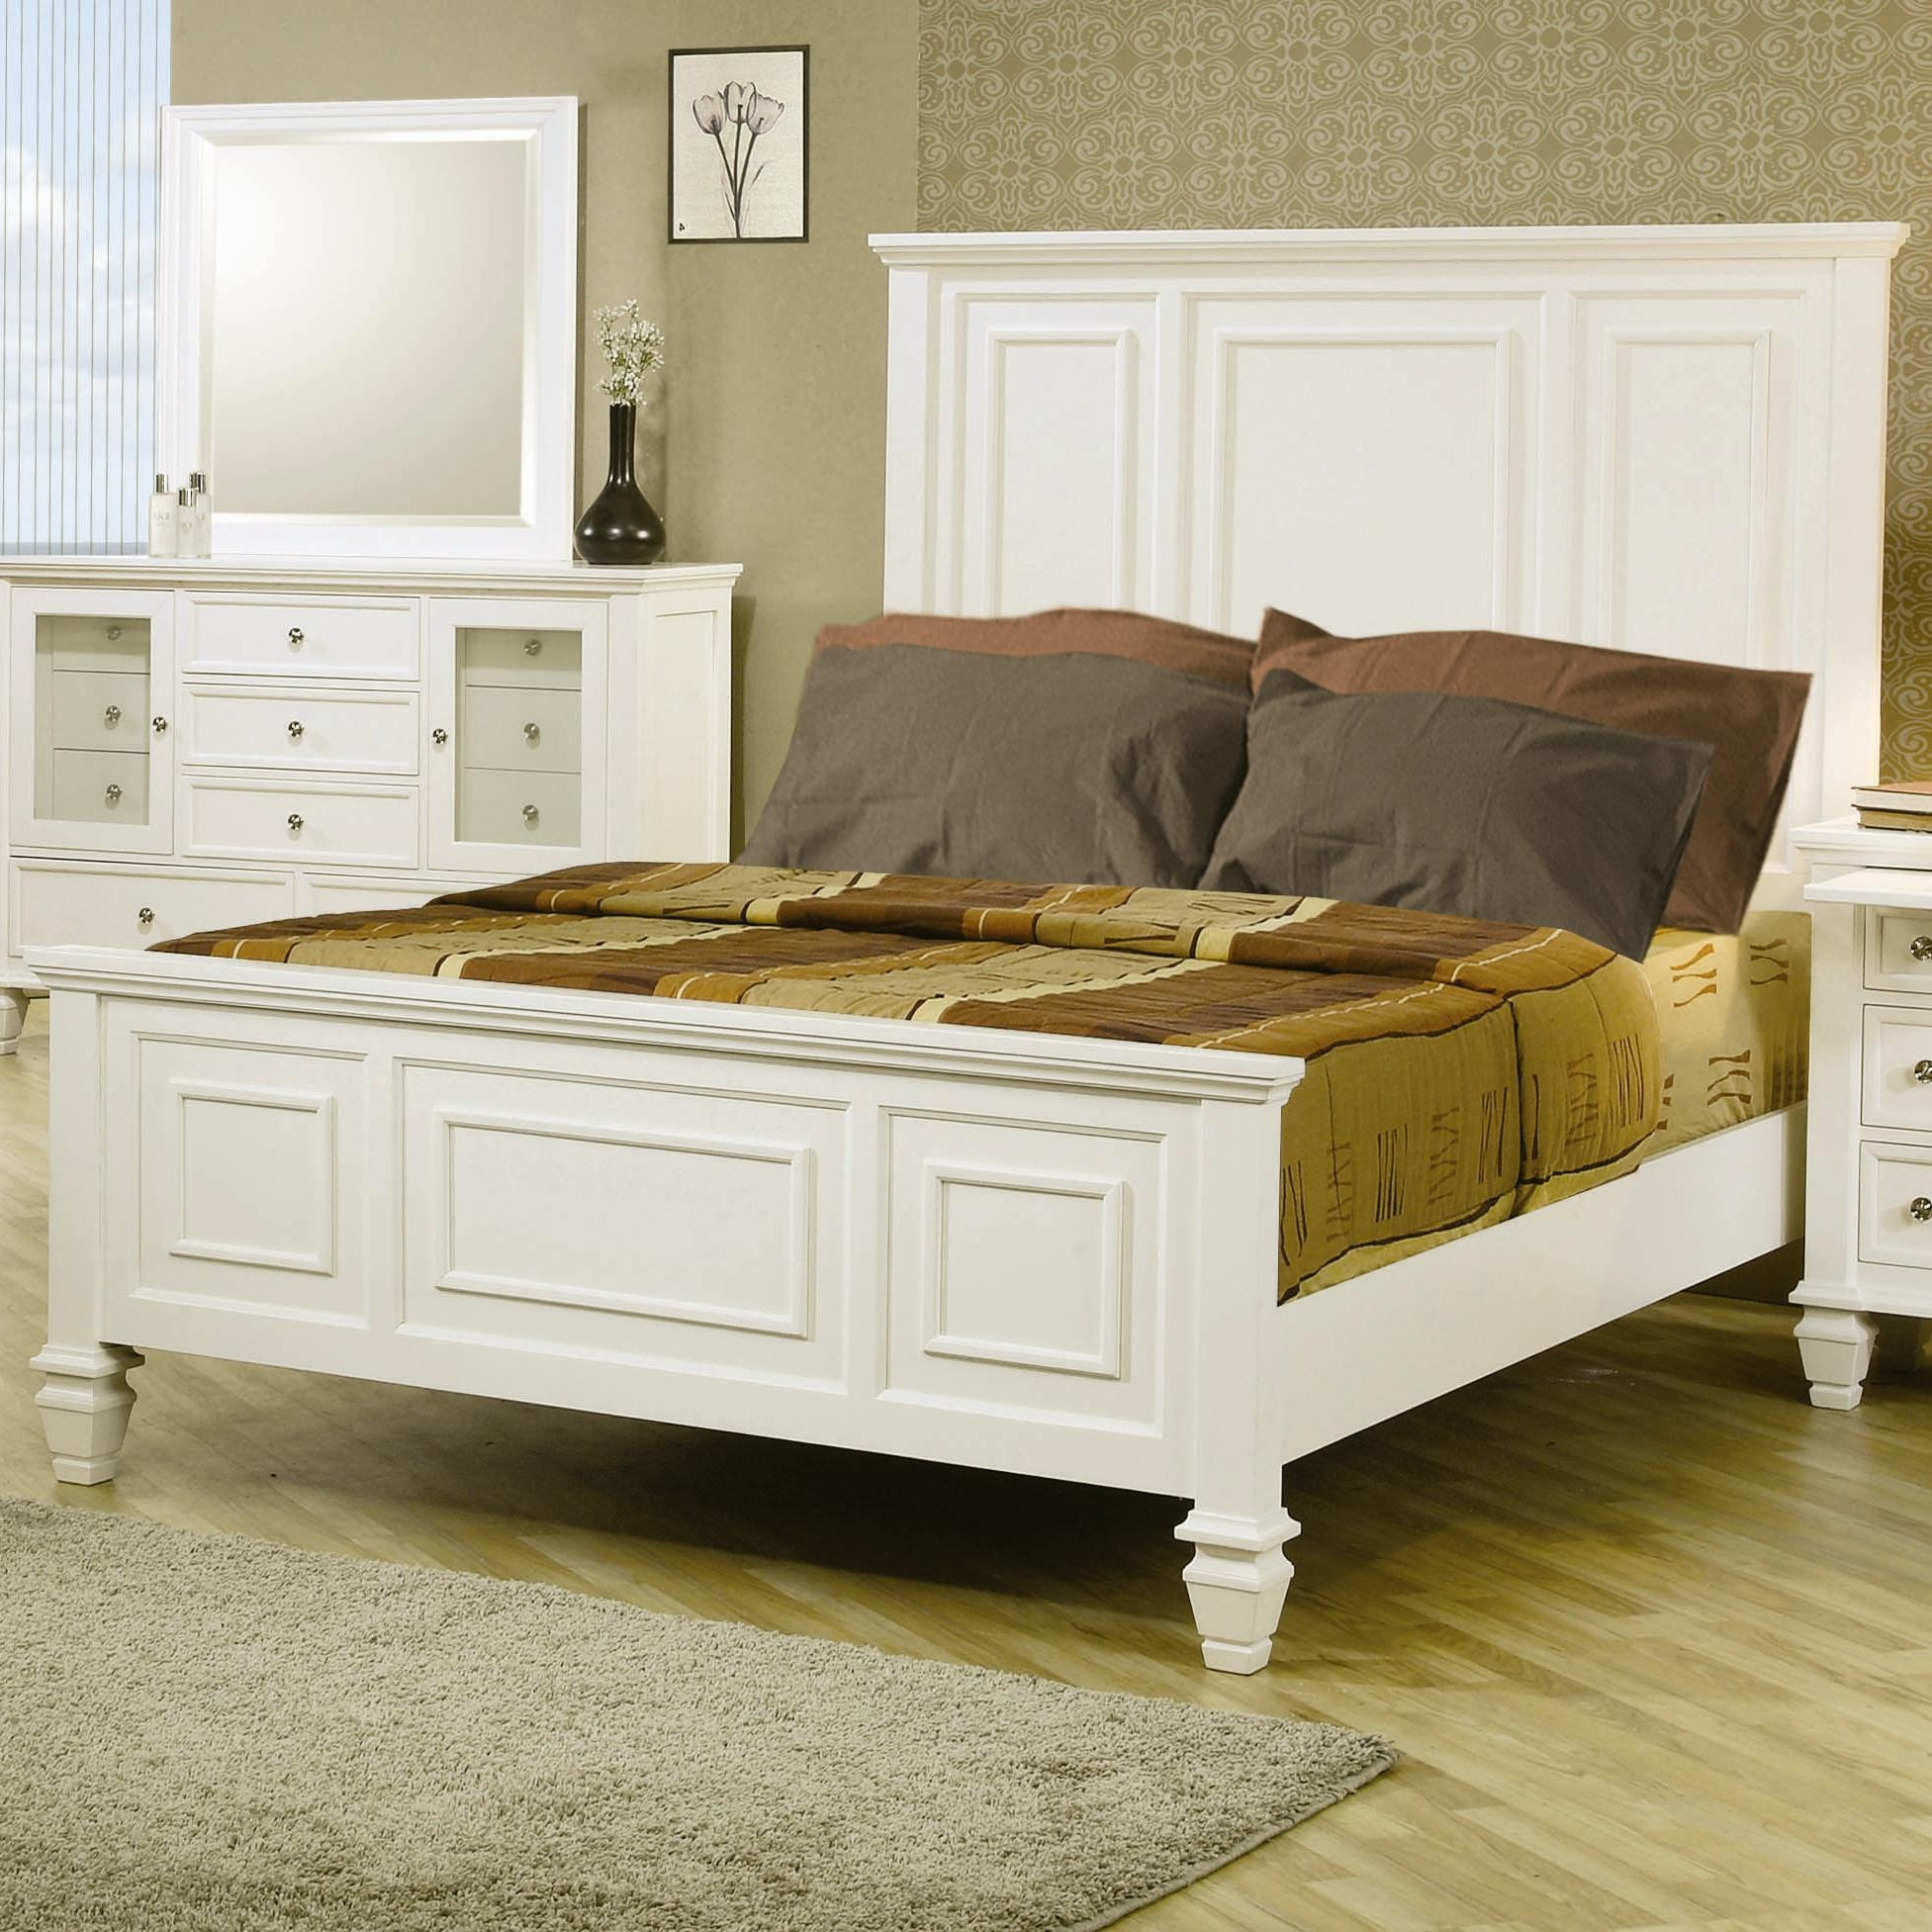 coaster bedroom queen bed 201301q simply discount